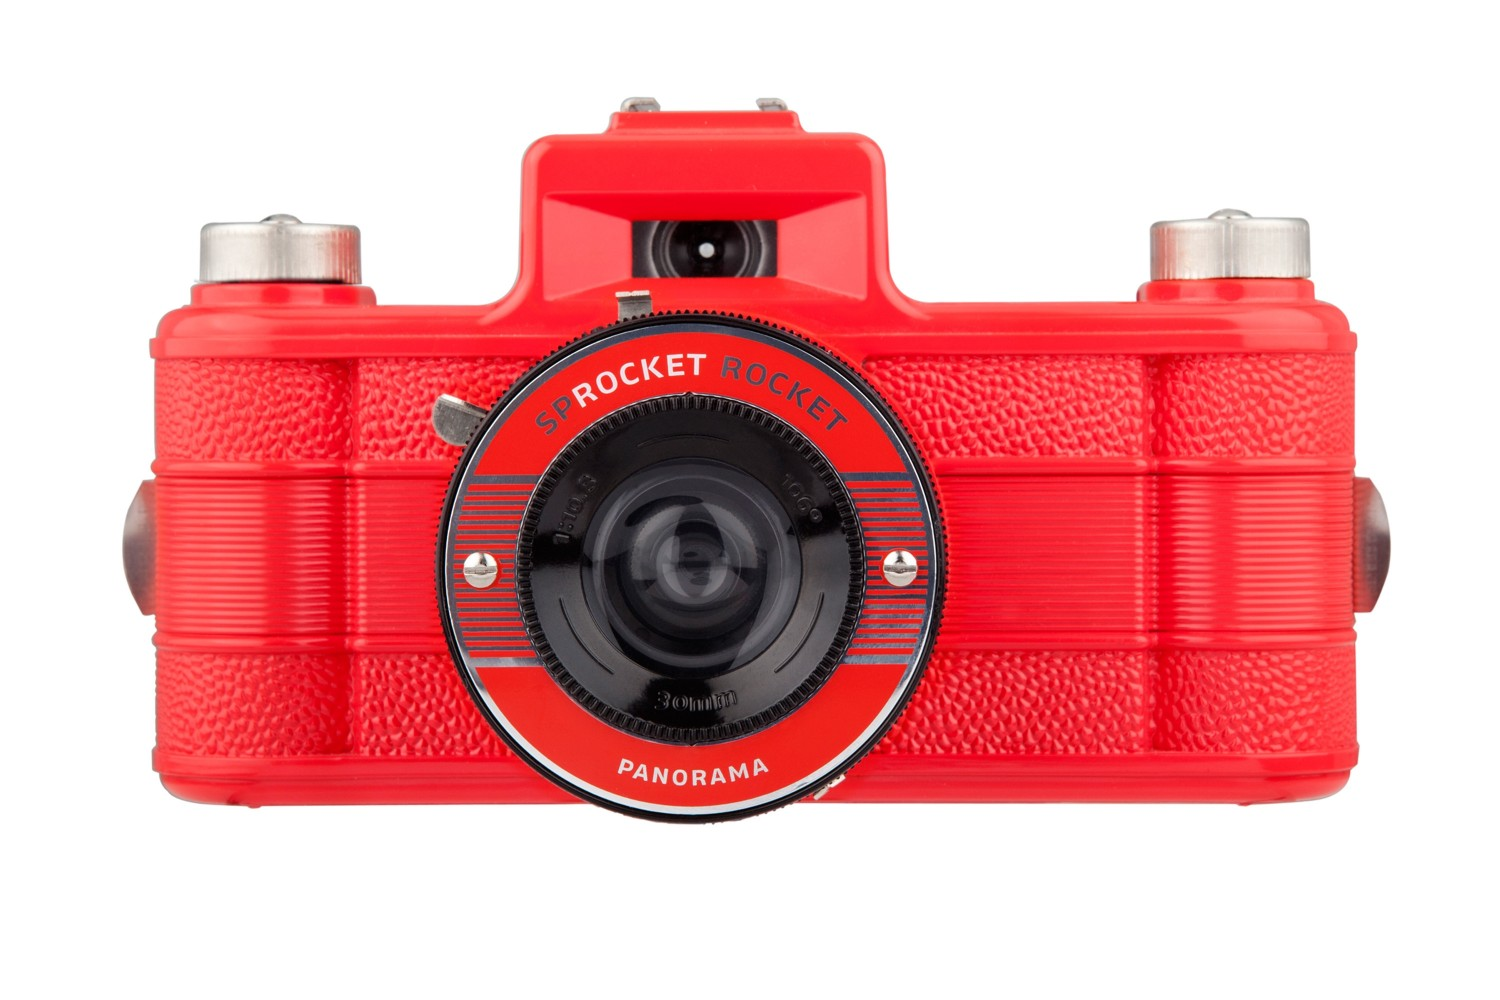 The Sprocket Rocket Red 2.0 Camera